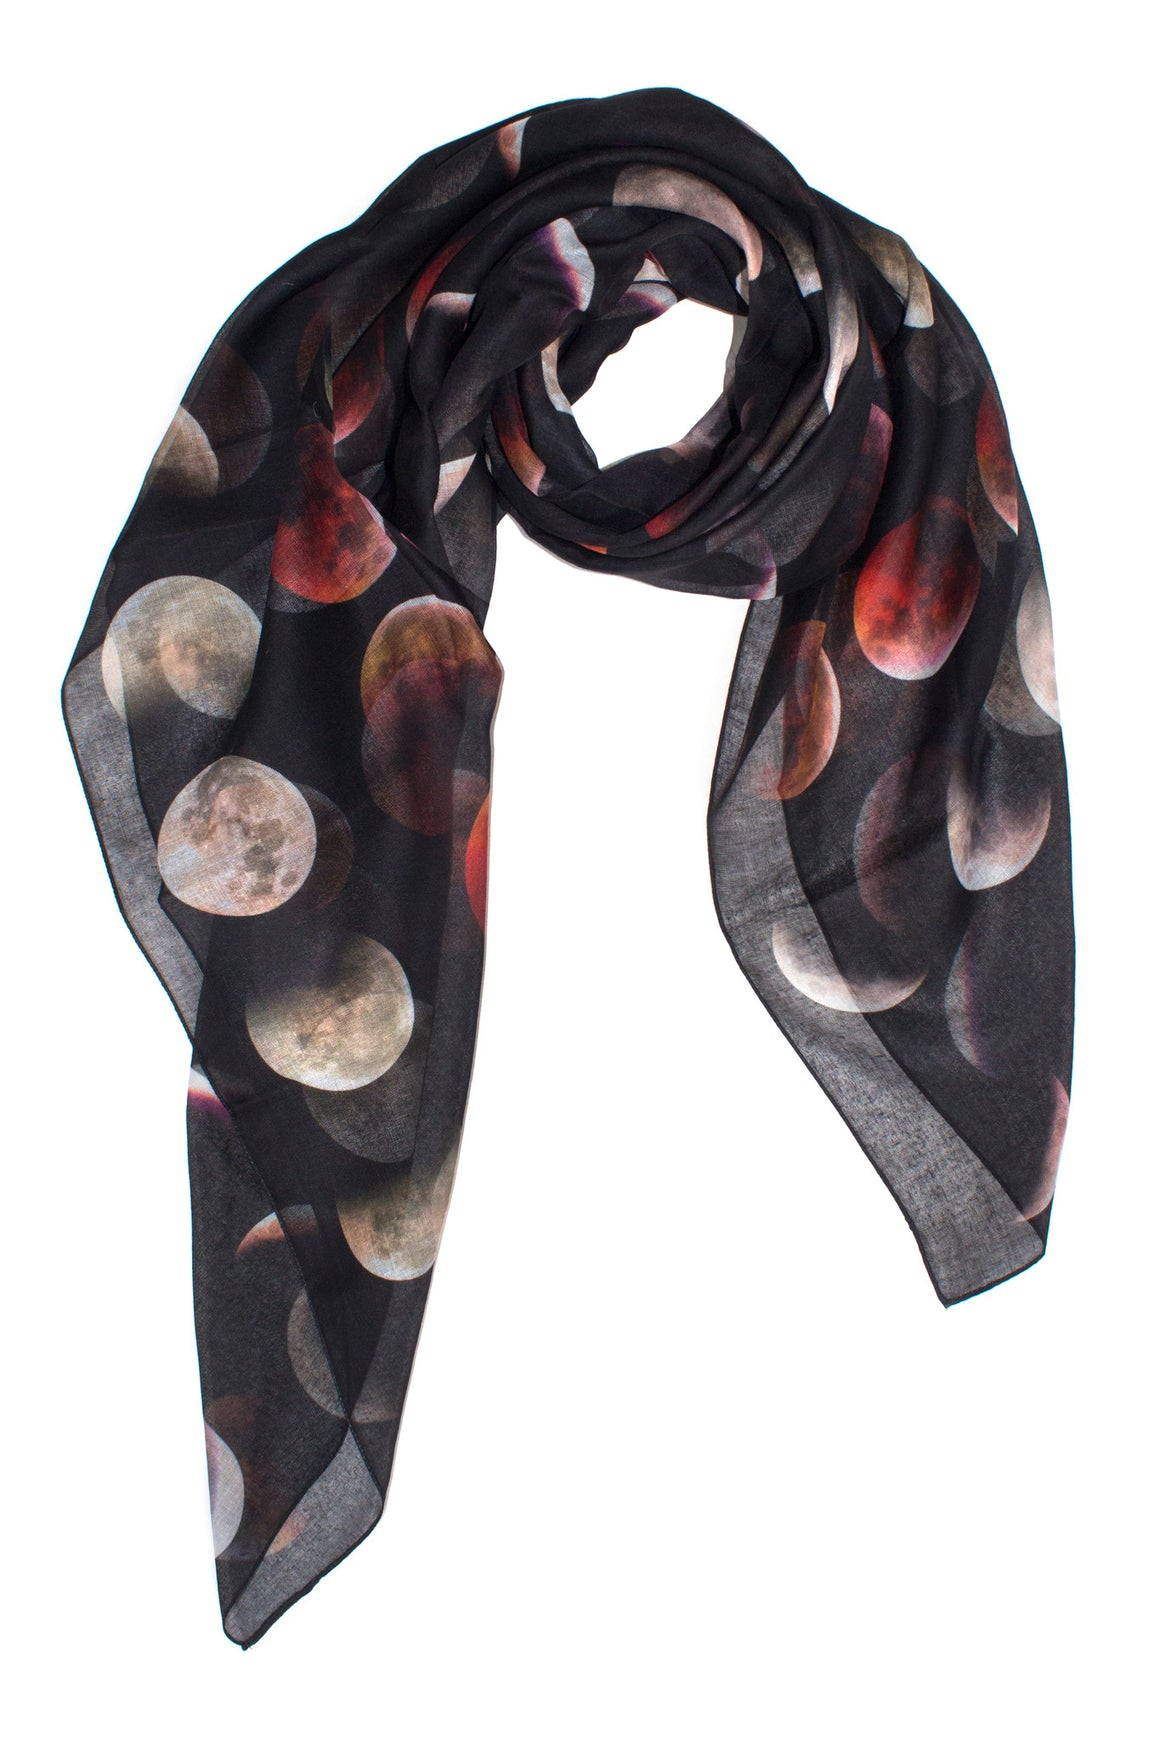 Blood Moon Phase Scarf, Shadowplay New York, Galaxy Print Clothing